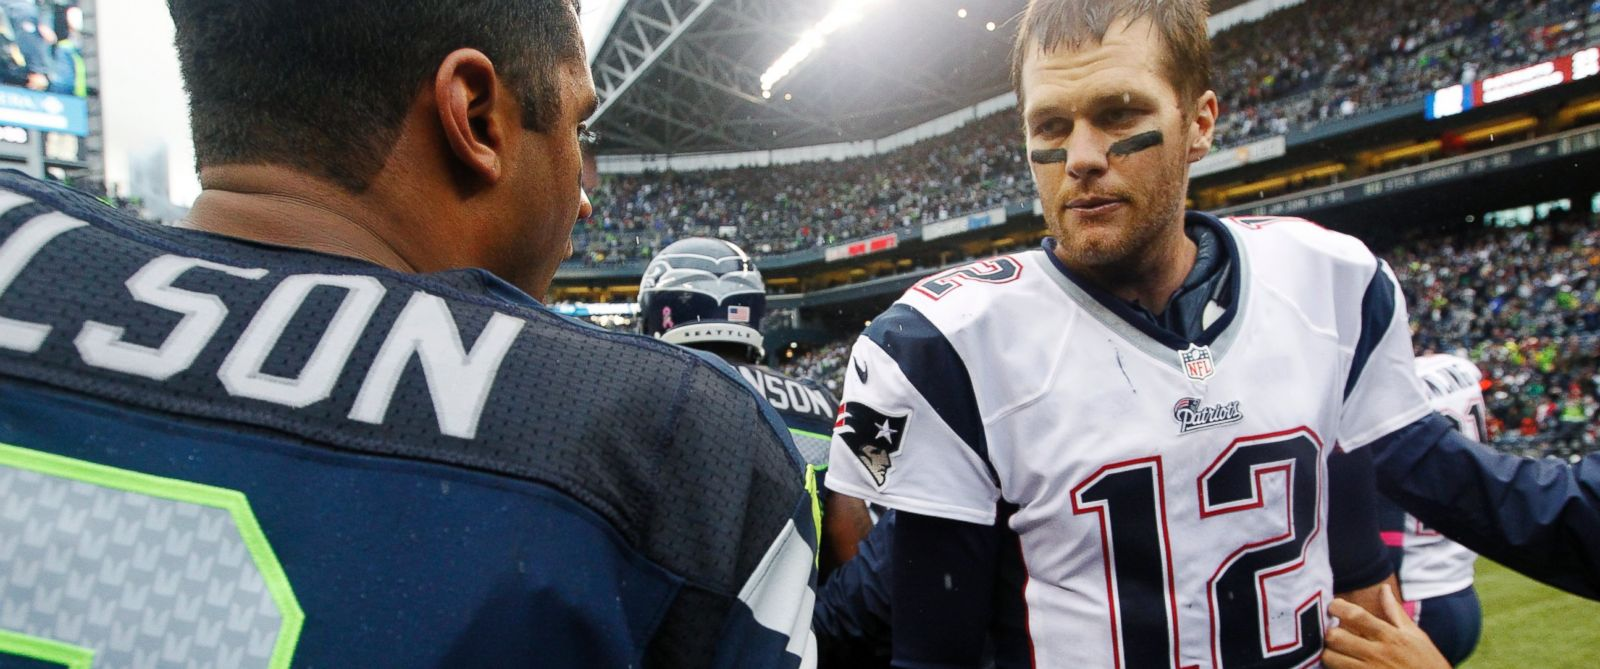 PHOTO: In this Oct. 14, 2012, file photo, New England Patriots quarterback Tom Brady talks with Seattle Seahawks quarterback Russell Wilson after an NFL football game in Seattle.